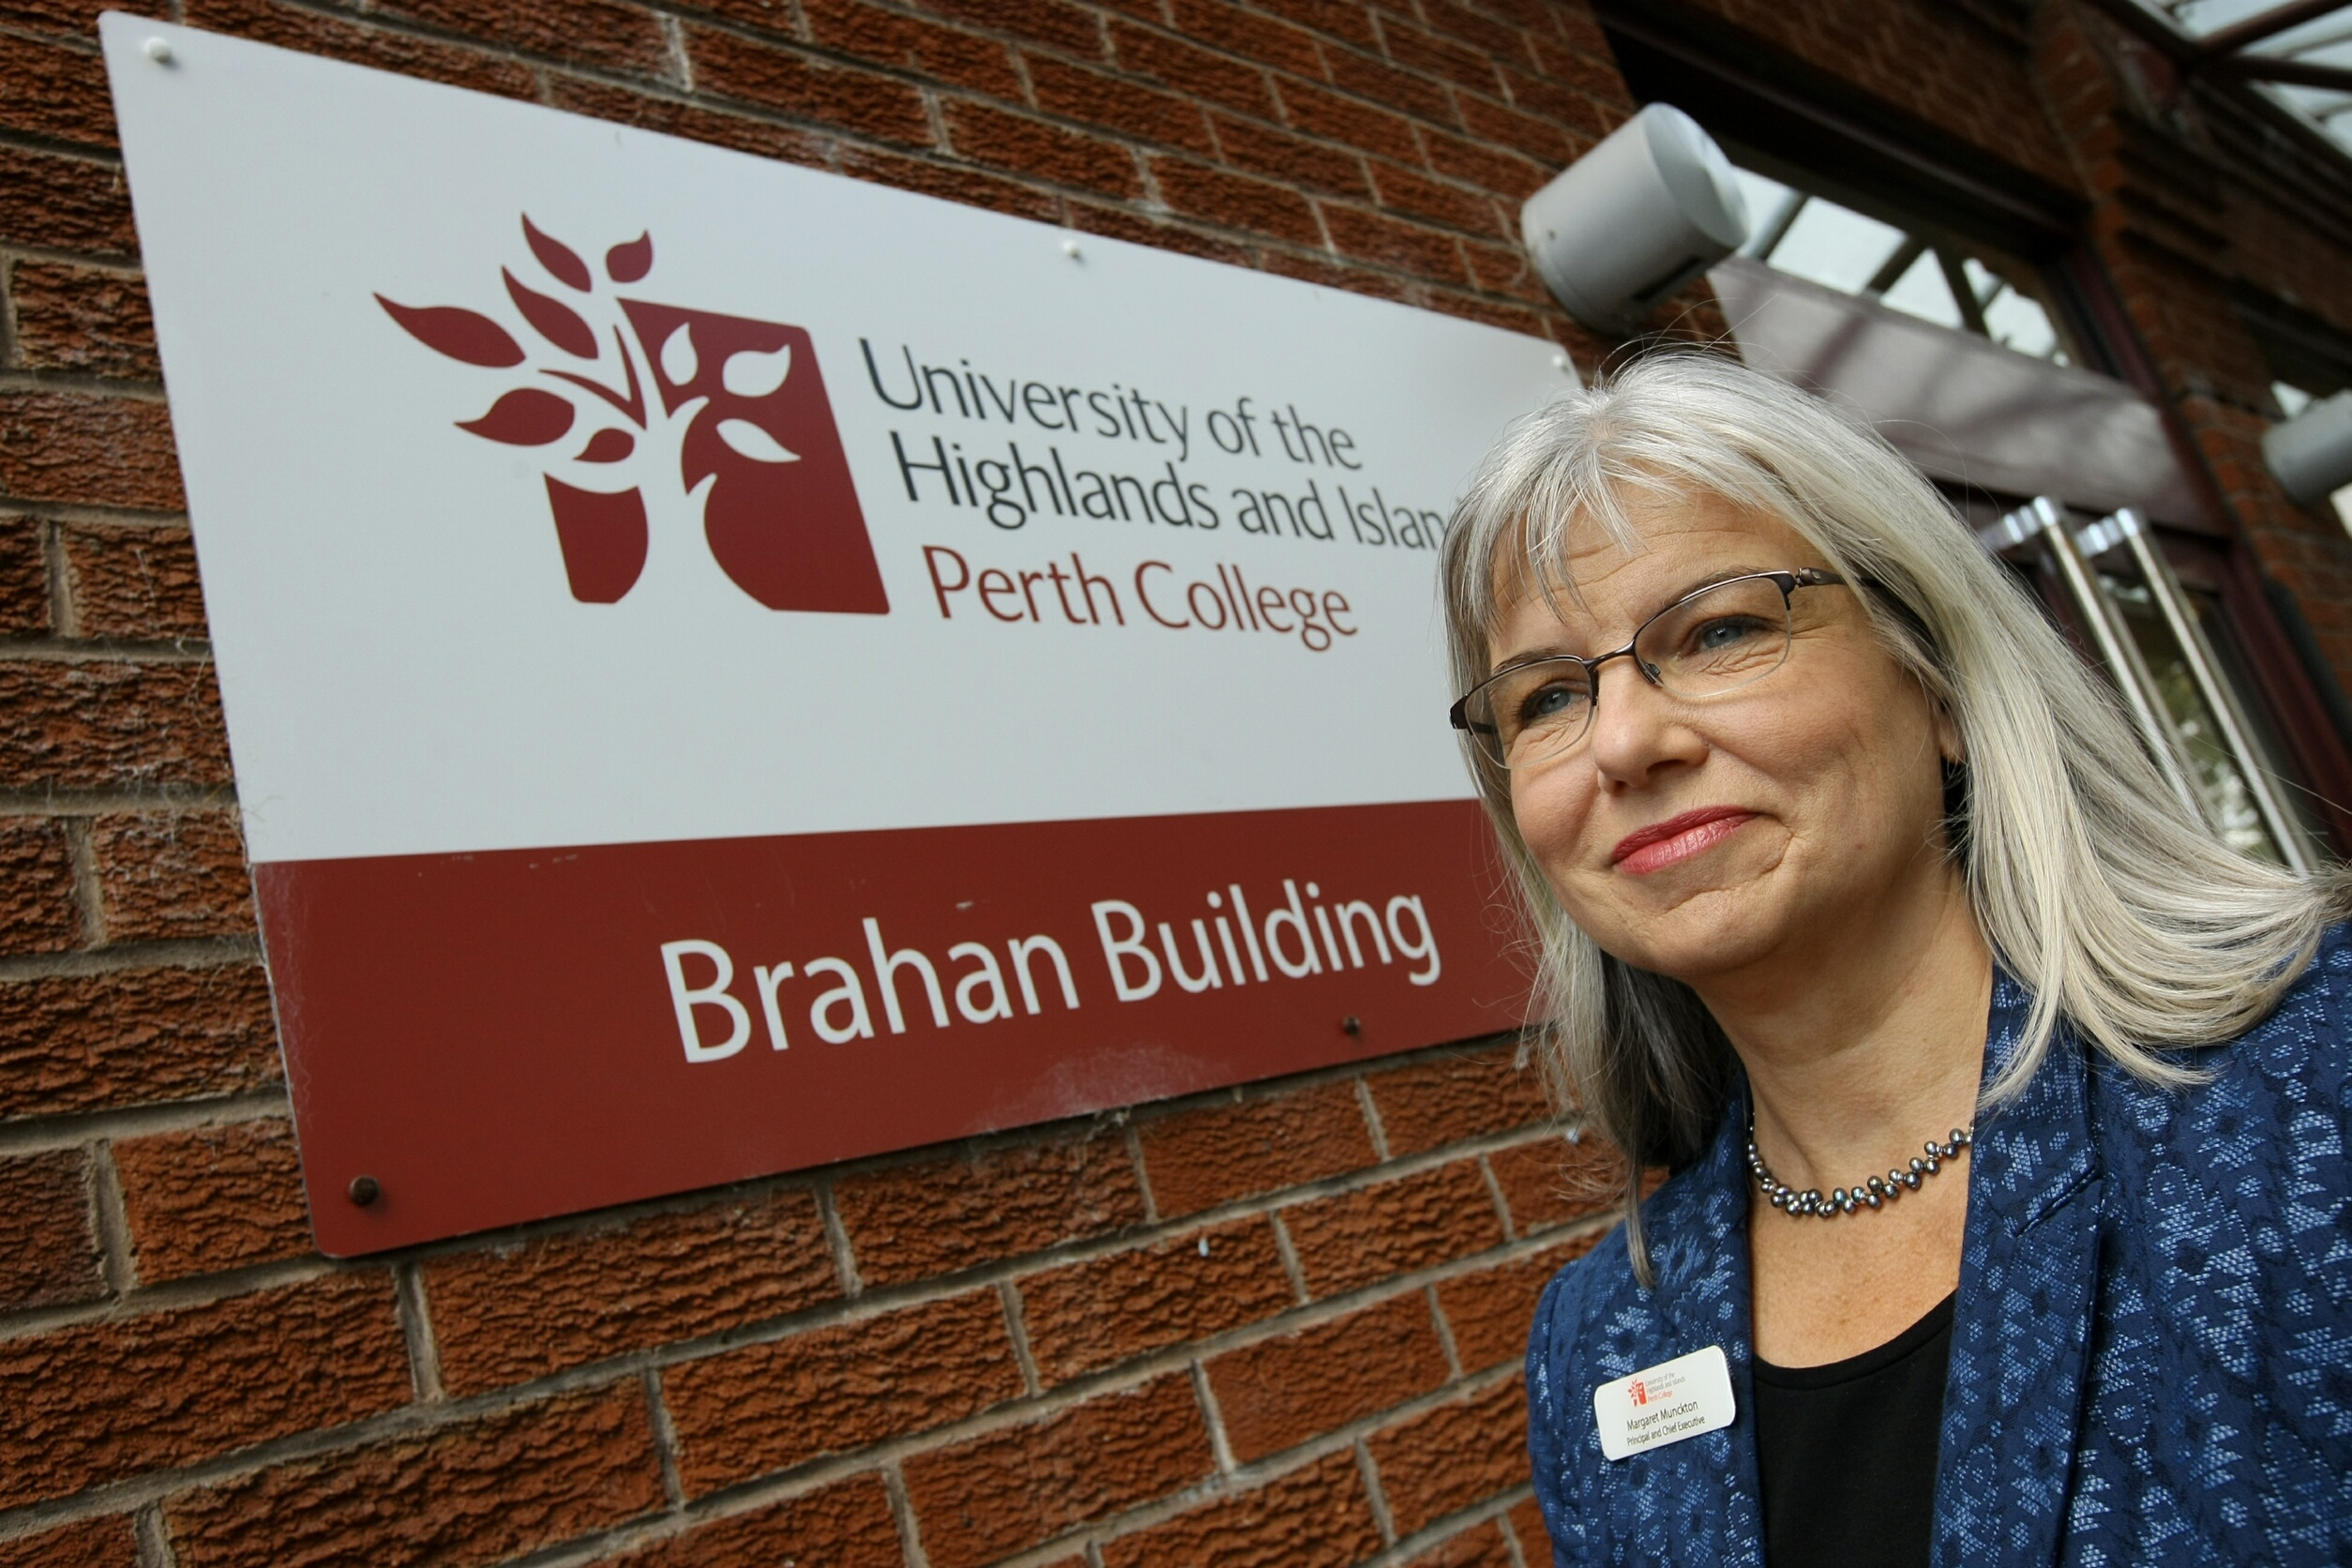 Among the senior staff criticised in the tribunal judgment was former Perth College UHI Principal Margaret Munckton, who stepped down in June.